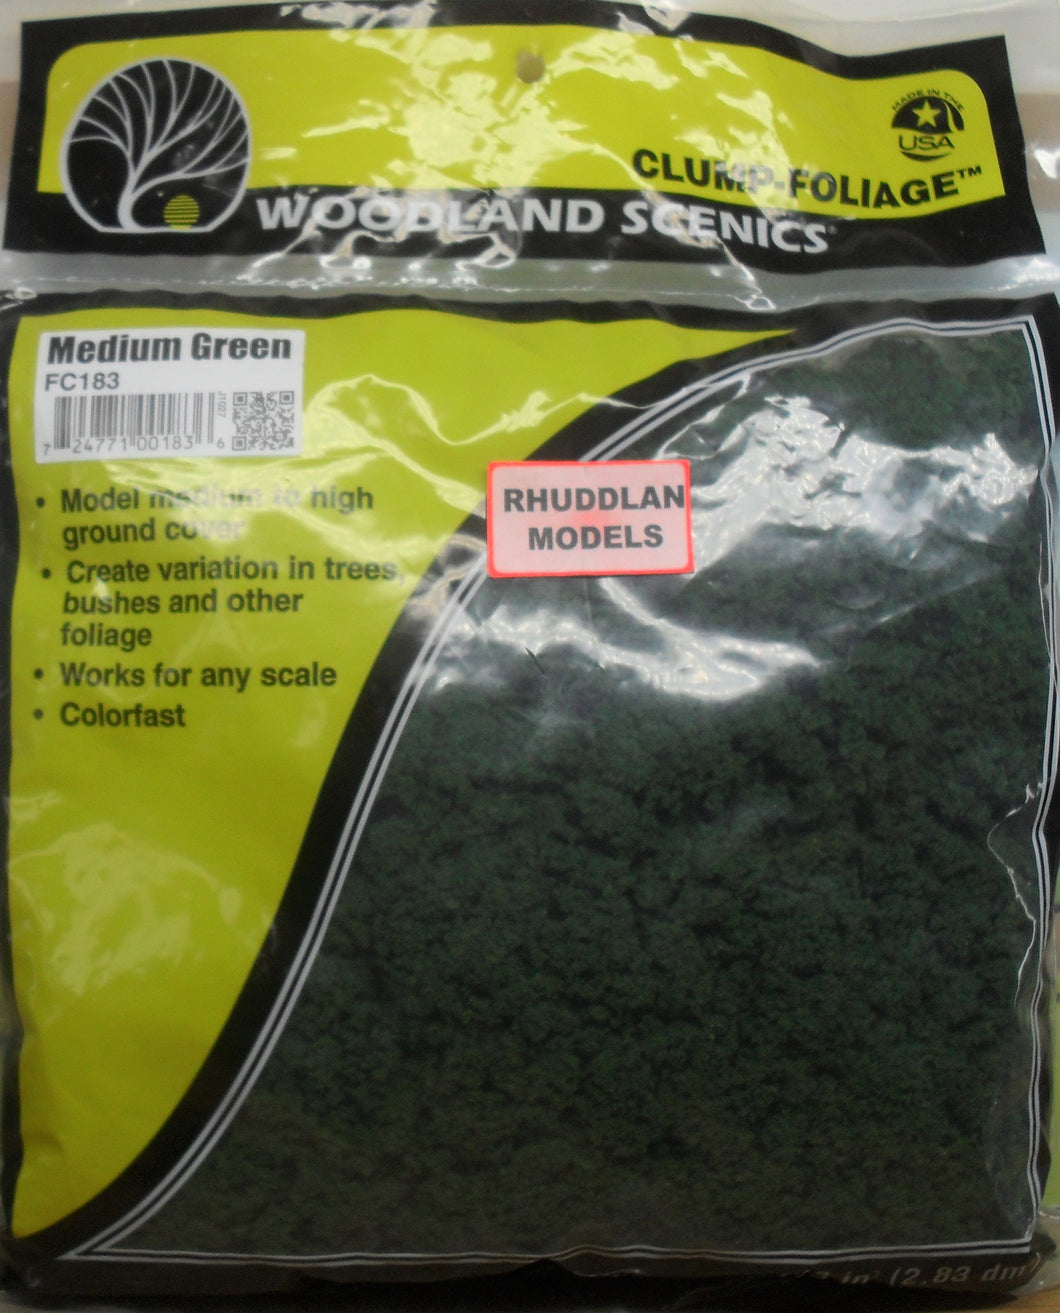 WOODLAND SCENICS FC183 CLUMP FOLIAGE MEDIUM GREEN - (PRICE INCLUDES DELIVERY)